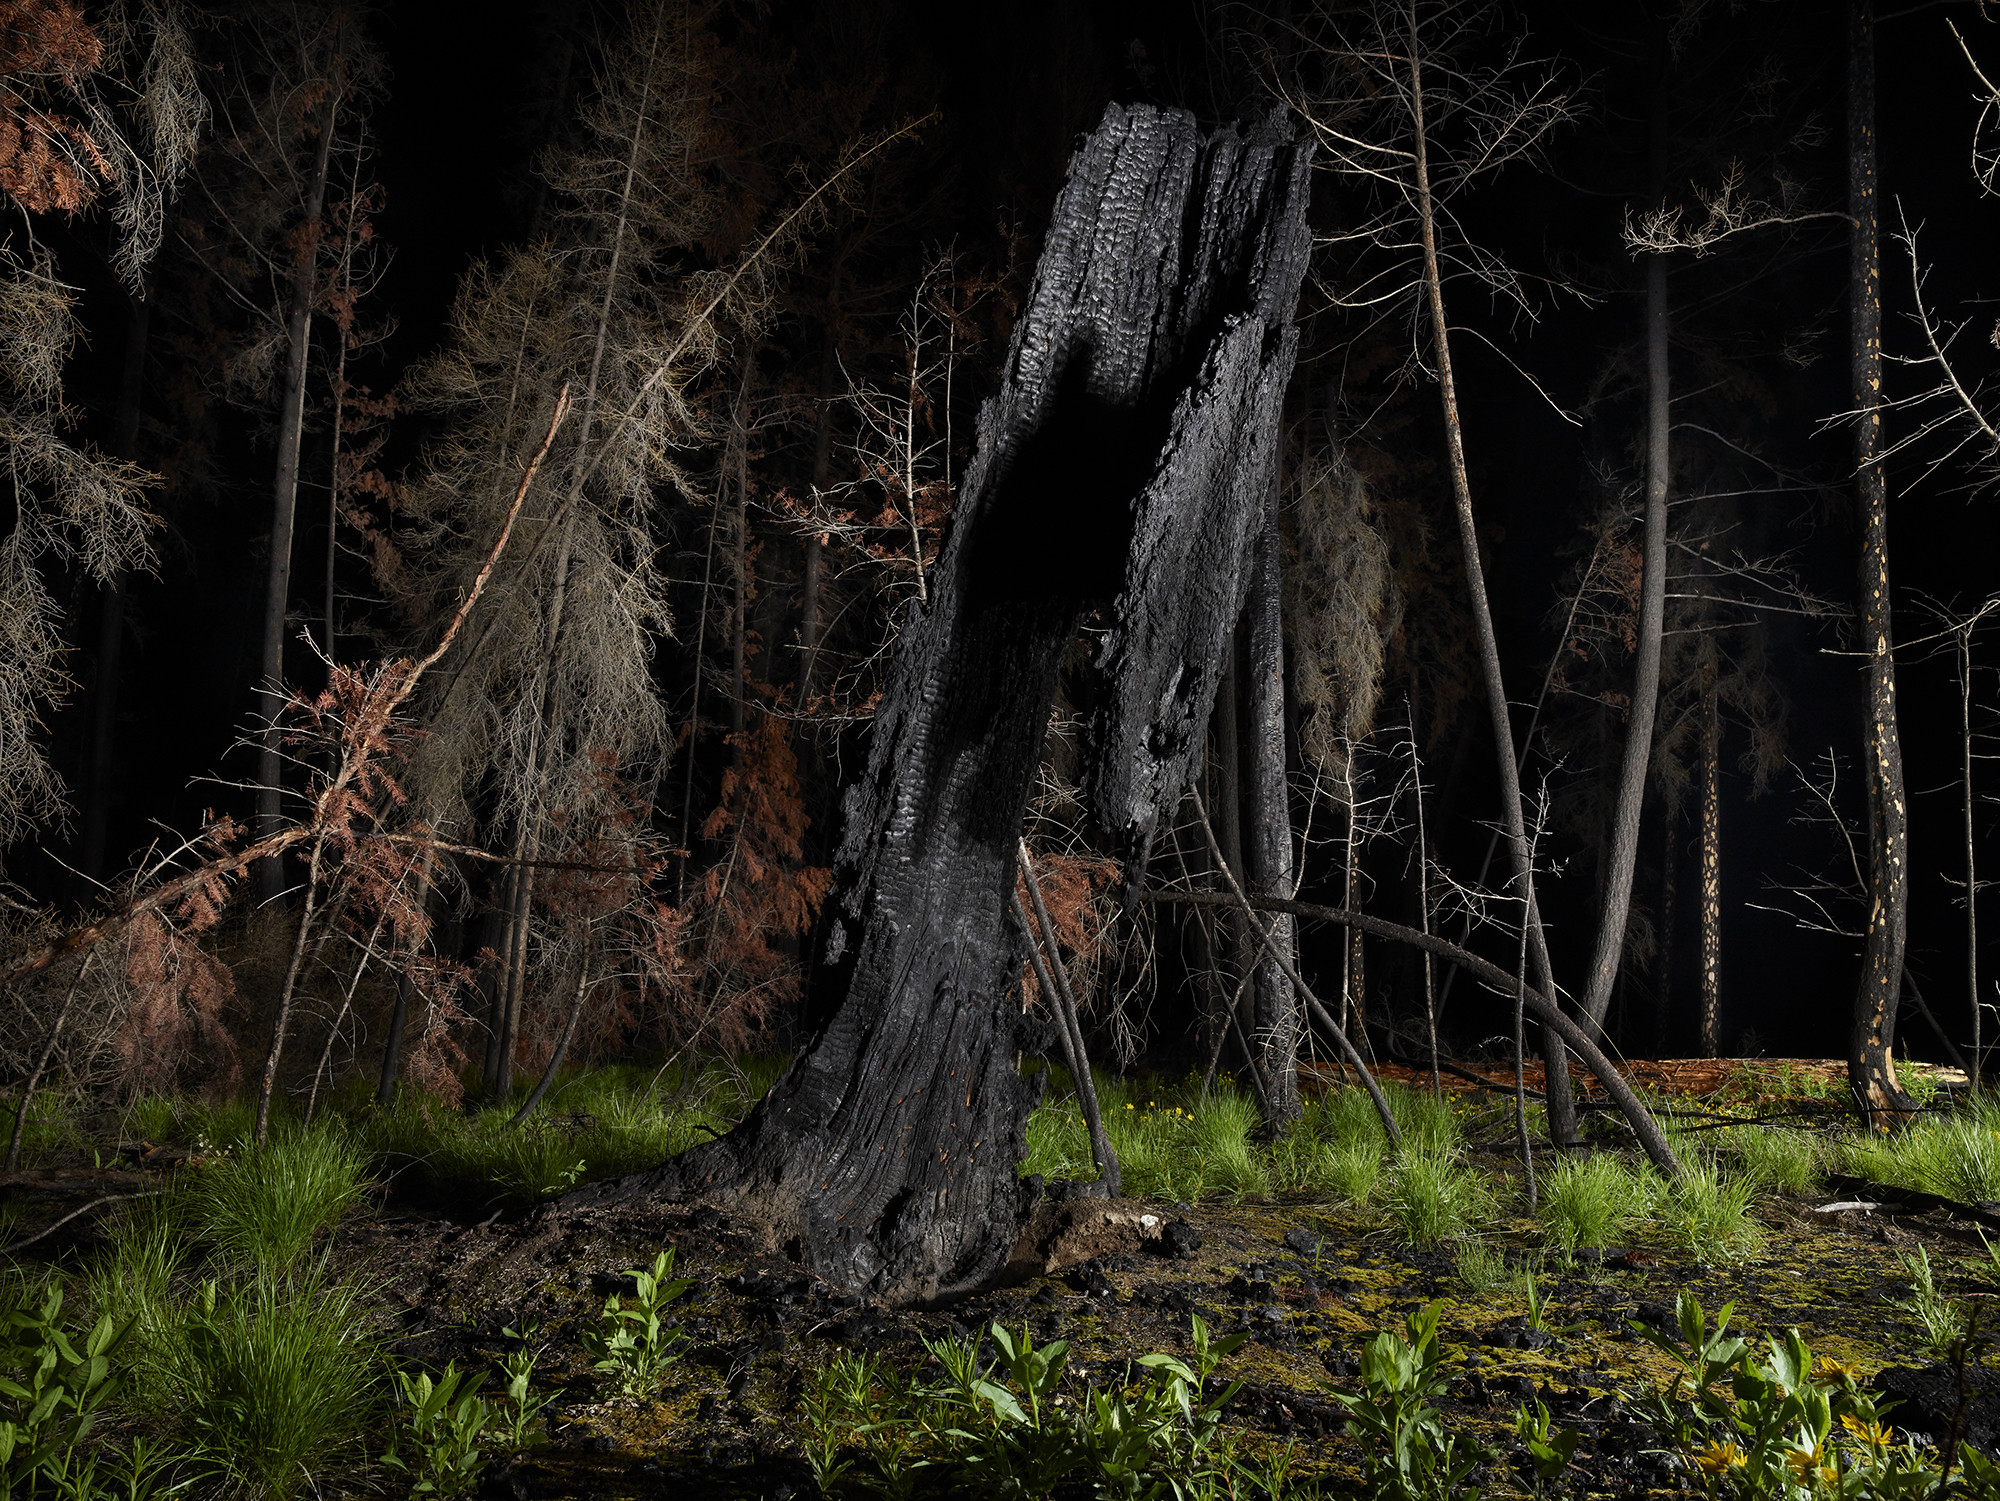 """<span class=""""link fancybox-details-link""""><a href=""""/artists/45-rita-leistner/works/35116-rita-leistner-the-tree-plantersenchanted-forest-11-2019/"""">View Detail Page</a></span><div class=""""artist""""><strong>Rita Leistner</strong></div> b. 1964 <div class=""""title""""><em>The Tree Planters–Enchanted Forest #11</em>, 2019</div> <div class=""""signed_and_dated"""">Signed, titled, dated, and editioned, au mount verso</div> <div class=""""medium"""">Pigment print on Hahnemühle Photo Silk Baryta Paper flush mounted to Aluminum Composite Panel</div> <div class=""""edition_details"""">Edition of 7 + 2 APs + 1 PP</div>"""